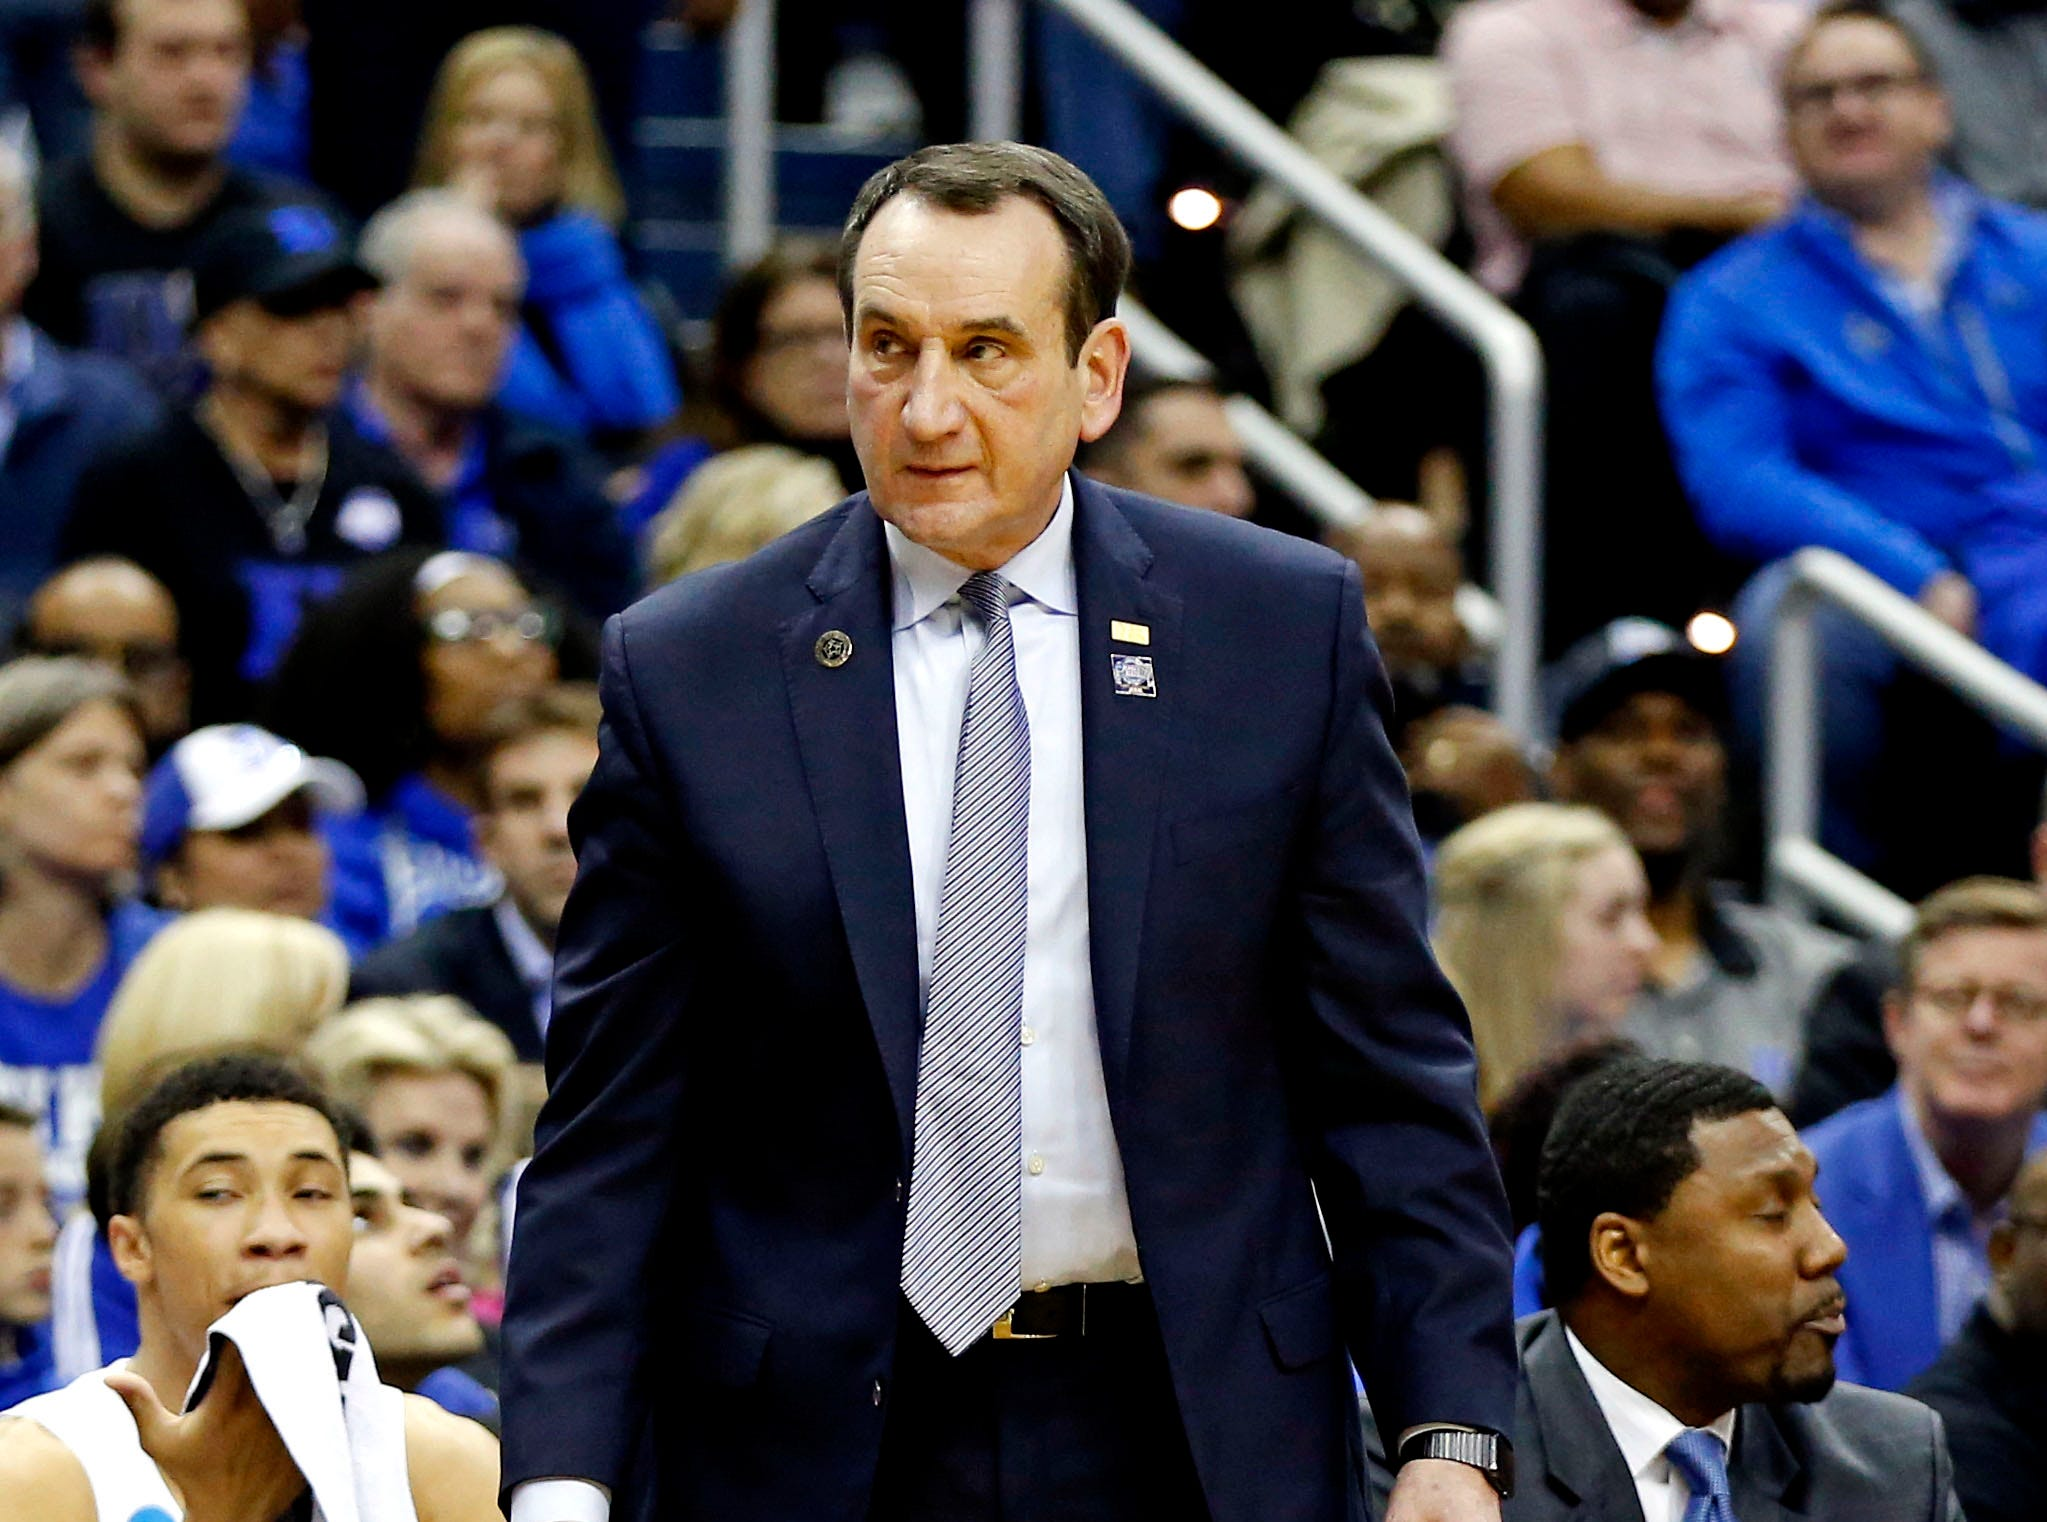 Mar 31, 2019; Washington, DC, USA; Duke Blue Devils head coach Mike Krzyzewski during the second half against the Michigan State Spartans in the championship game of the east regional of the 2019 NCAA Tournament at Capital One Arena. Mandatory Credit: Amber Searls-USA TODAY Sports